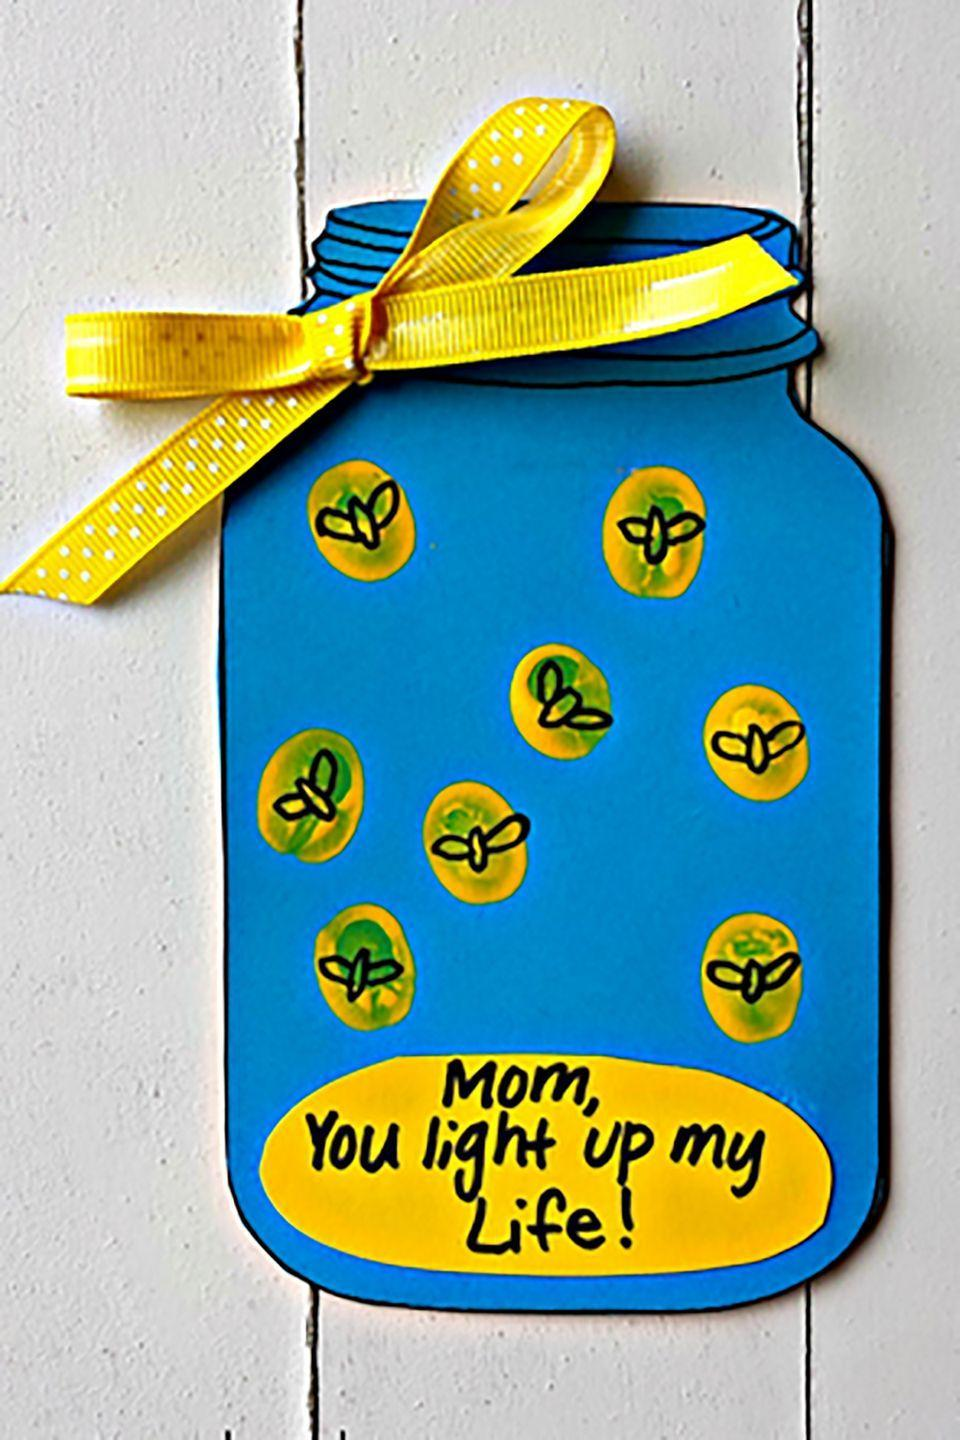 "<p>Mom will adore this handmade Mason jar card, and the kids will love drawing all the little lightning bugs on their fingerprints.</p><p><strong>Get the tutorial at <a href=""http://www.craftymorning.com/firefly-light-life-mothers-day-card-free-printable/"" rel=""nofollow noopener"" target=""_blank"" data-ylk=""slk:Crafty Morning"" class=""link rapid-noclick-resp"">Crafty Morning</a>. </strong></p>"